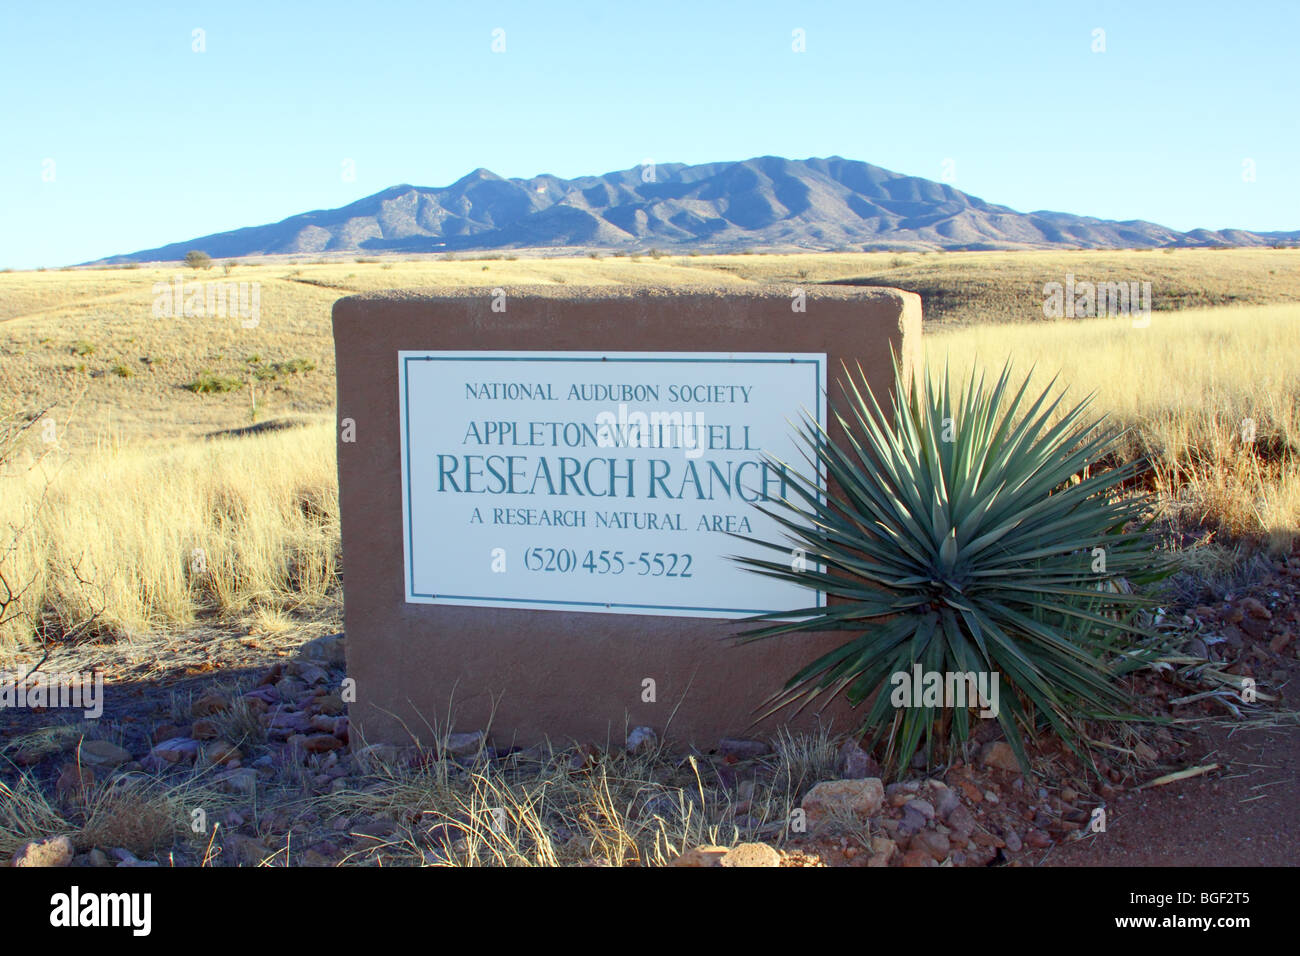 Puerta norte de la Sociedad Nacional Audubon Appleton-Whittell Research Ranch cerca de Elgin, Arizona, Estados Unidos. Imagen De Stock